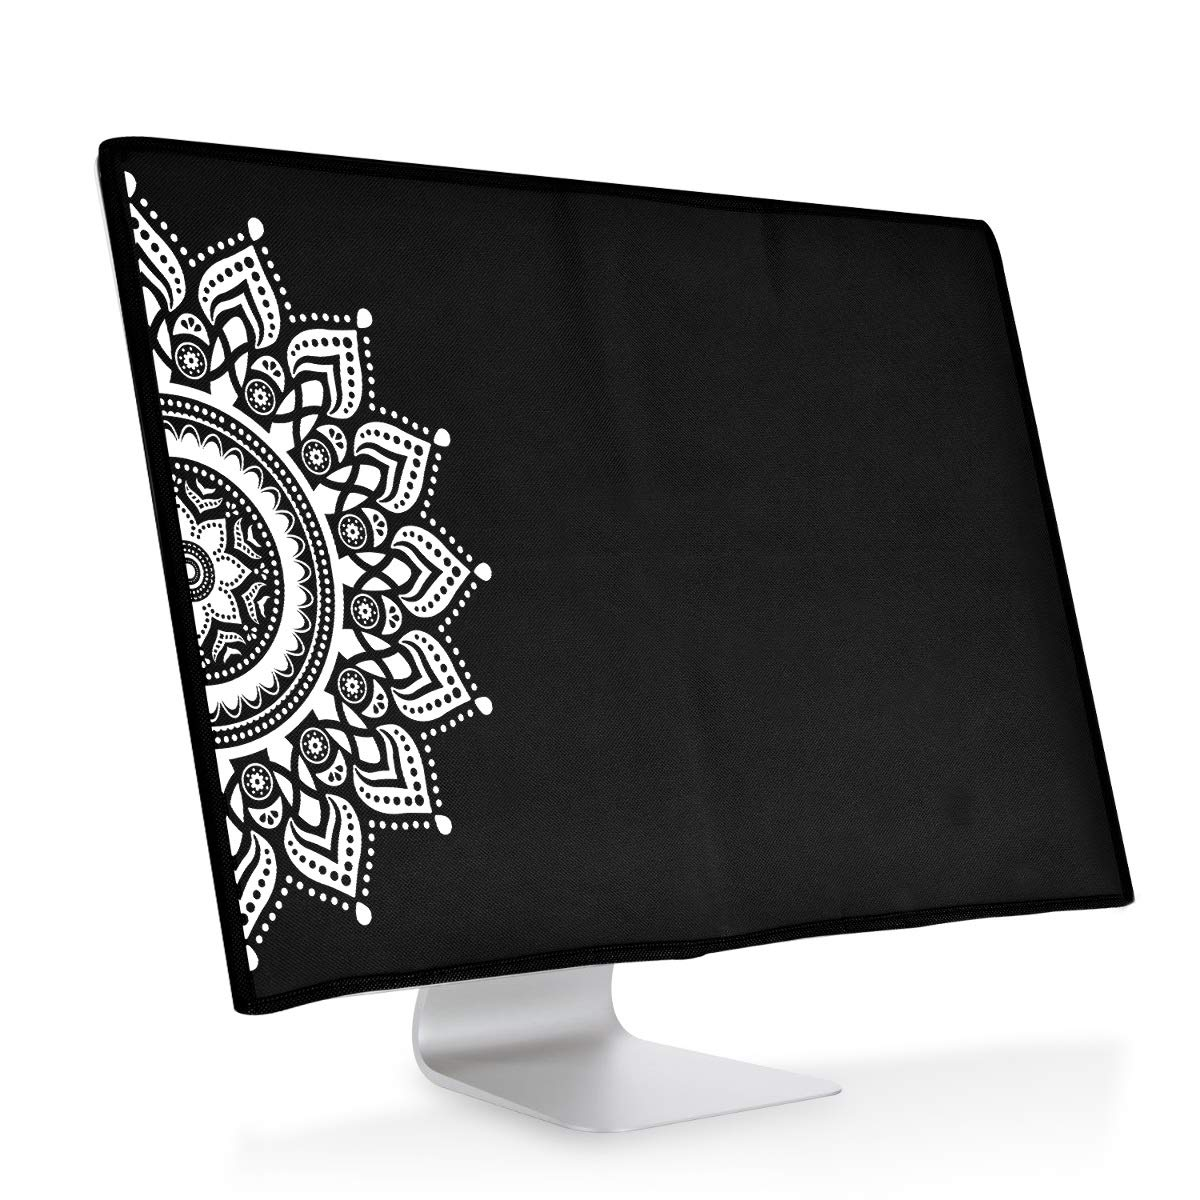 White//Black Dust Cover PC Monitor Case Screen Display Protector kwmobile Monitor Cover for Apple iMac 27 iMac Pro 27